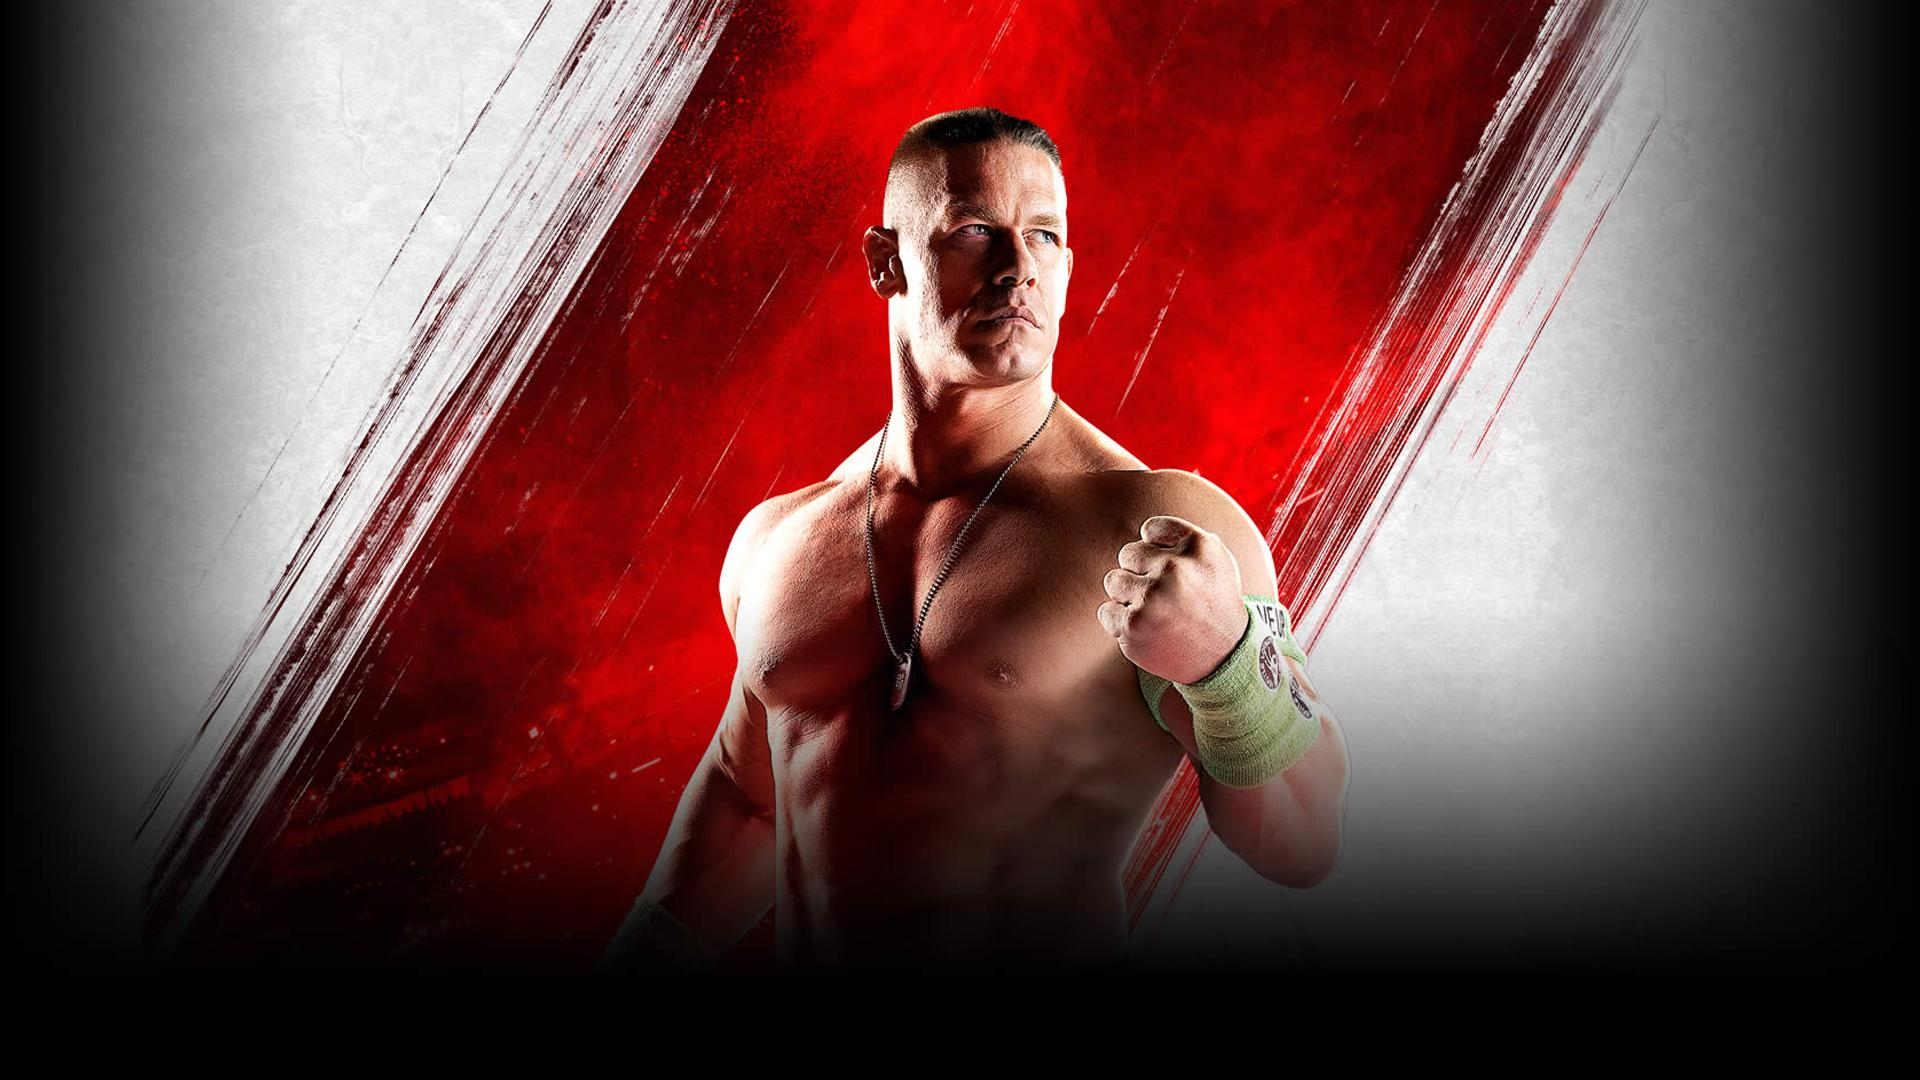 Wallpapers Wwe 2k15 Images